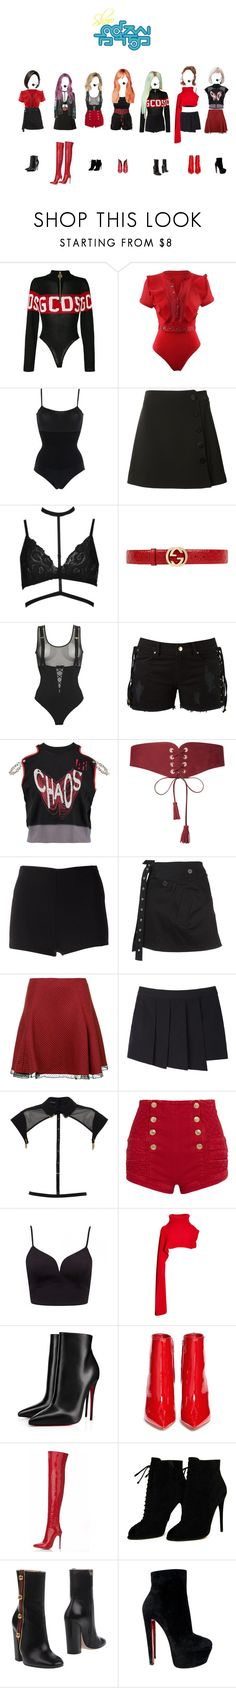 """""""Show Music Core:""""Comeback Stage"""" G.R.L.Z-Whatta Man + Win Speech (emmotional) and Encore"""" by ygentertainment on Polyvore featuring mode, GCDS, Wolford, Misha Nonoo, Boohoo, Gucci, Chantal Thomass, Amapô, Vivienne Westwood Anglomania et Maison Boinet"""